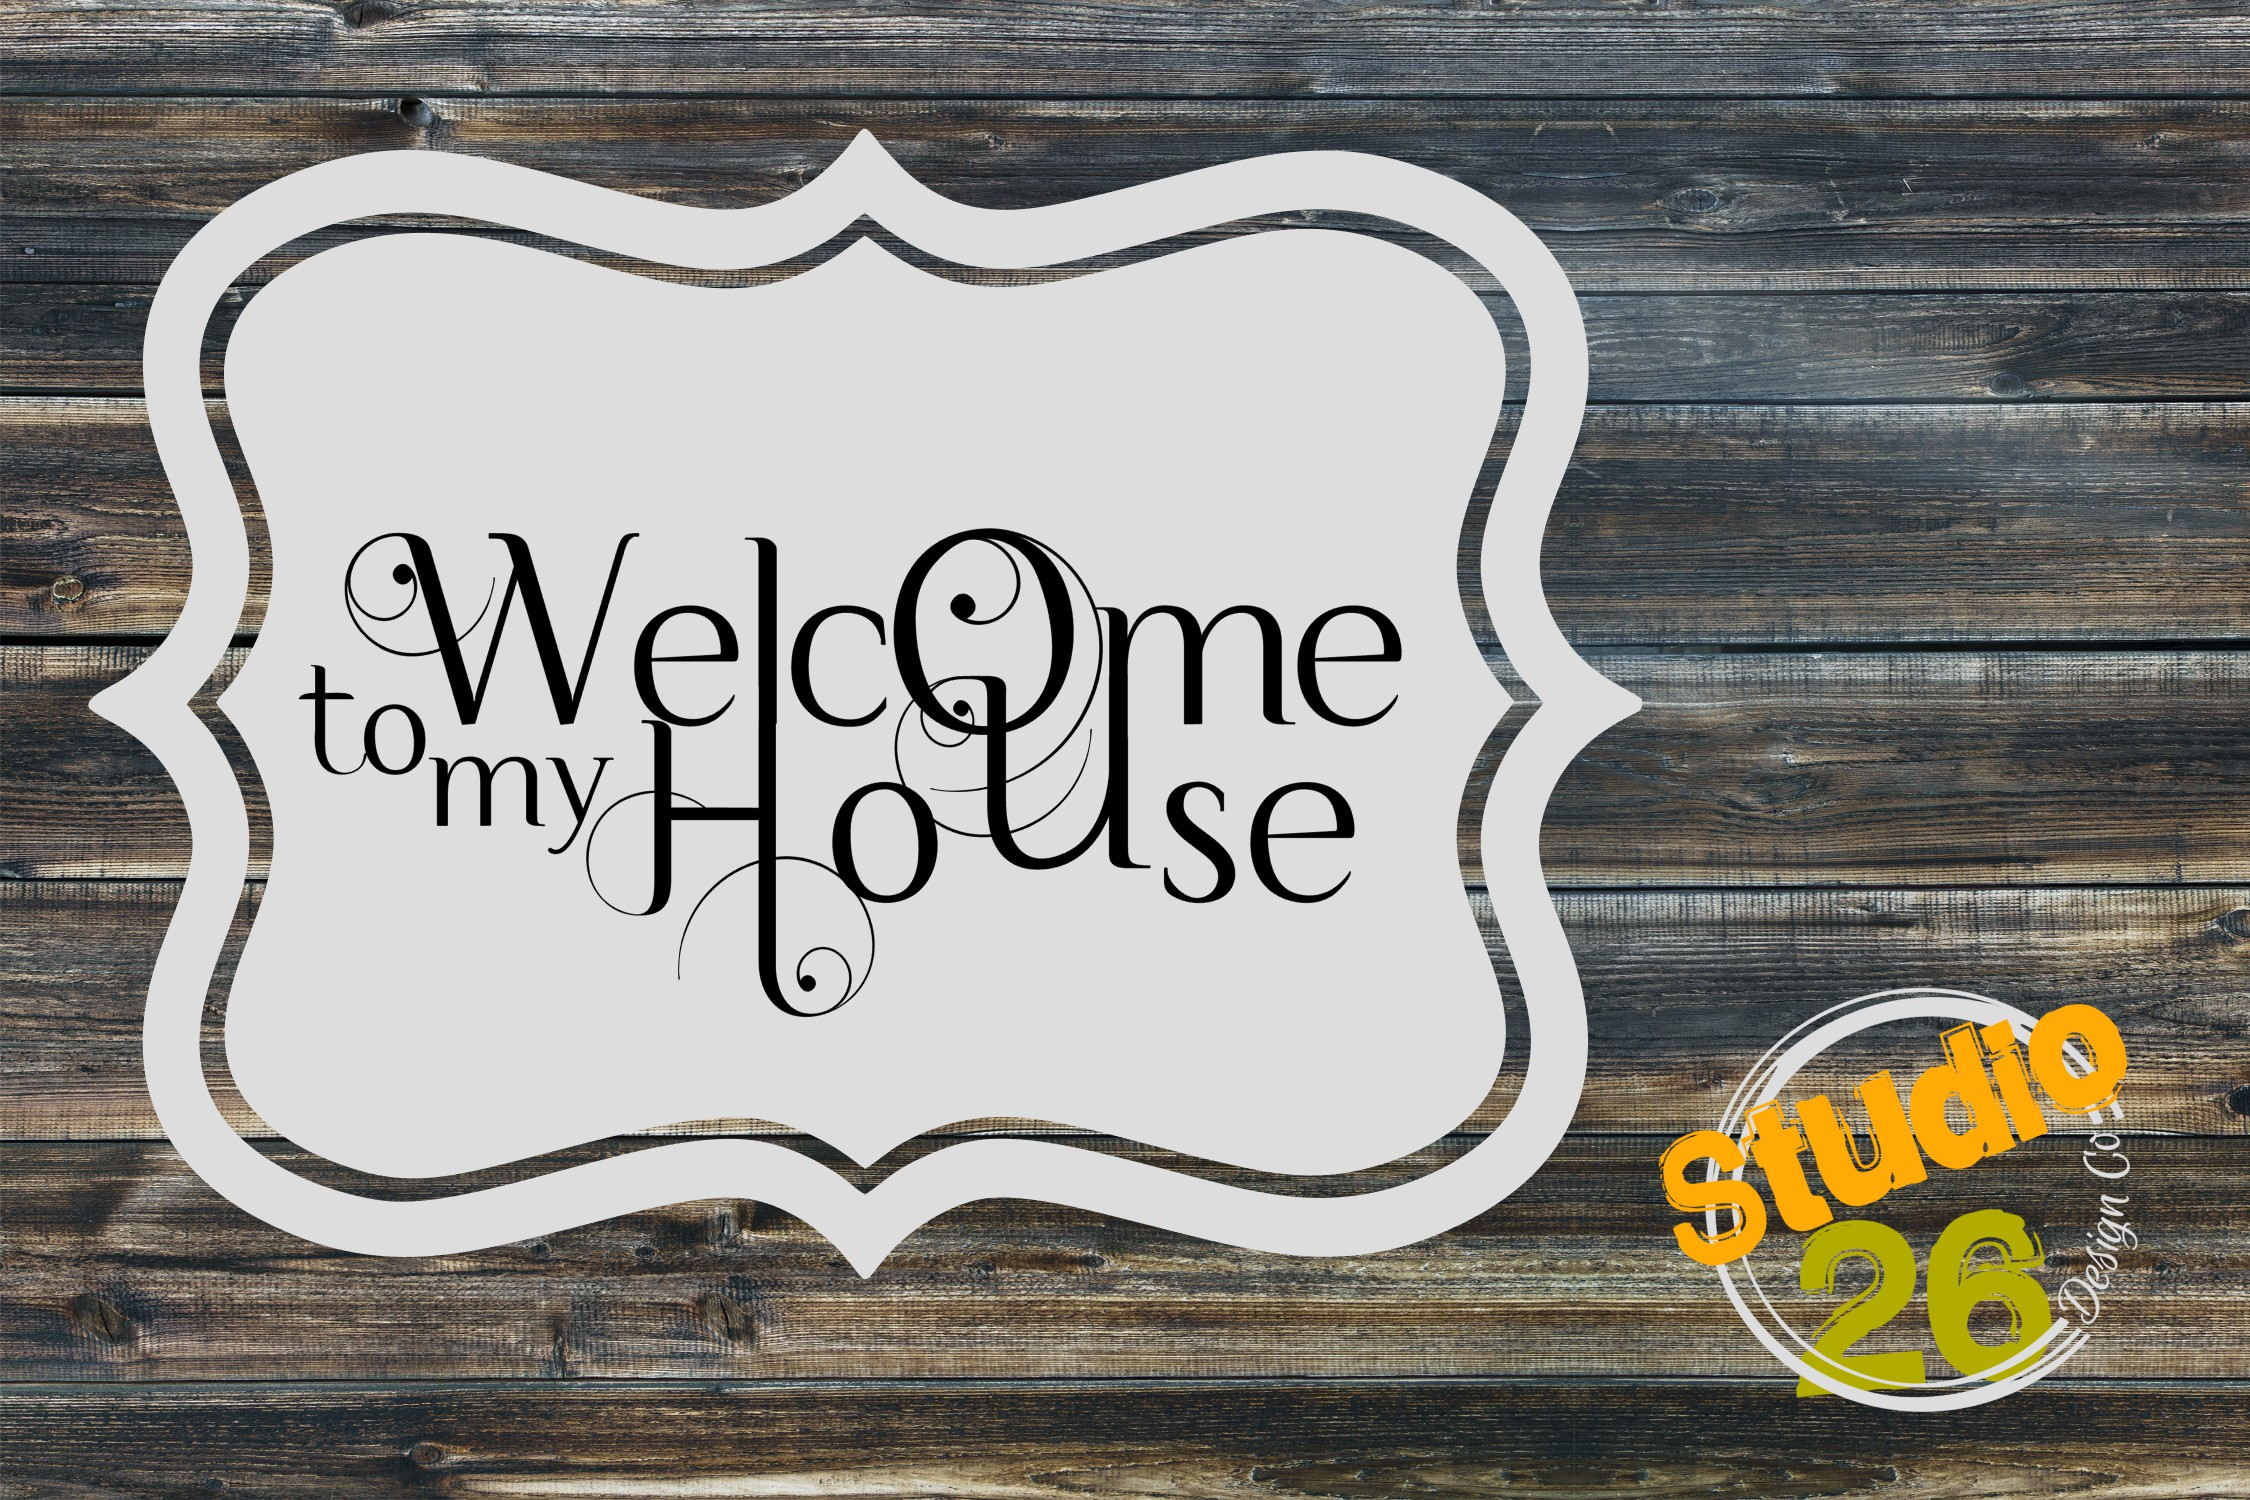 Download Free Welcome To My House Graphic By Studio 26 Design Co Creative for Cricut Explore, Silhouette and other cutting machines.